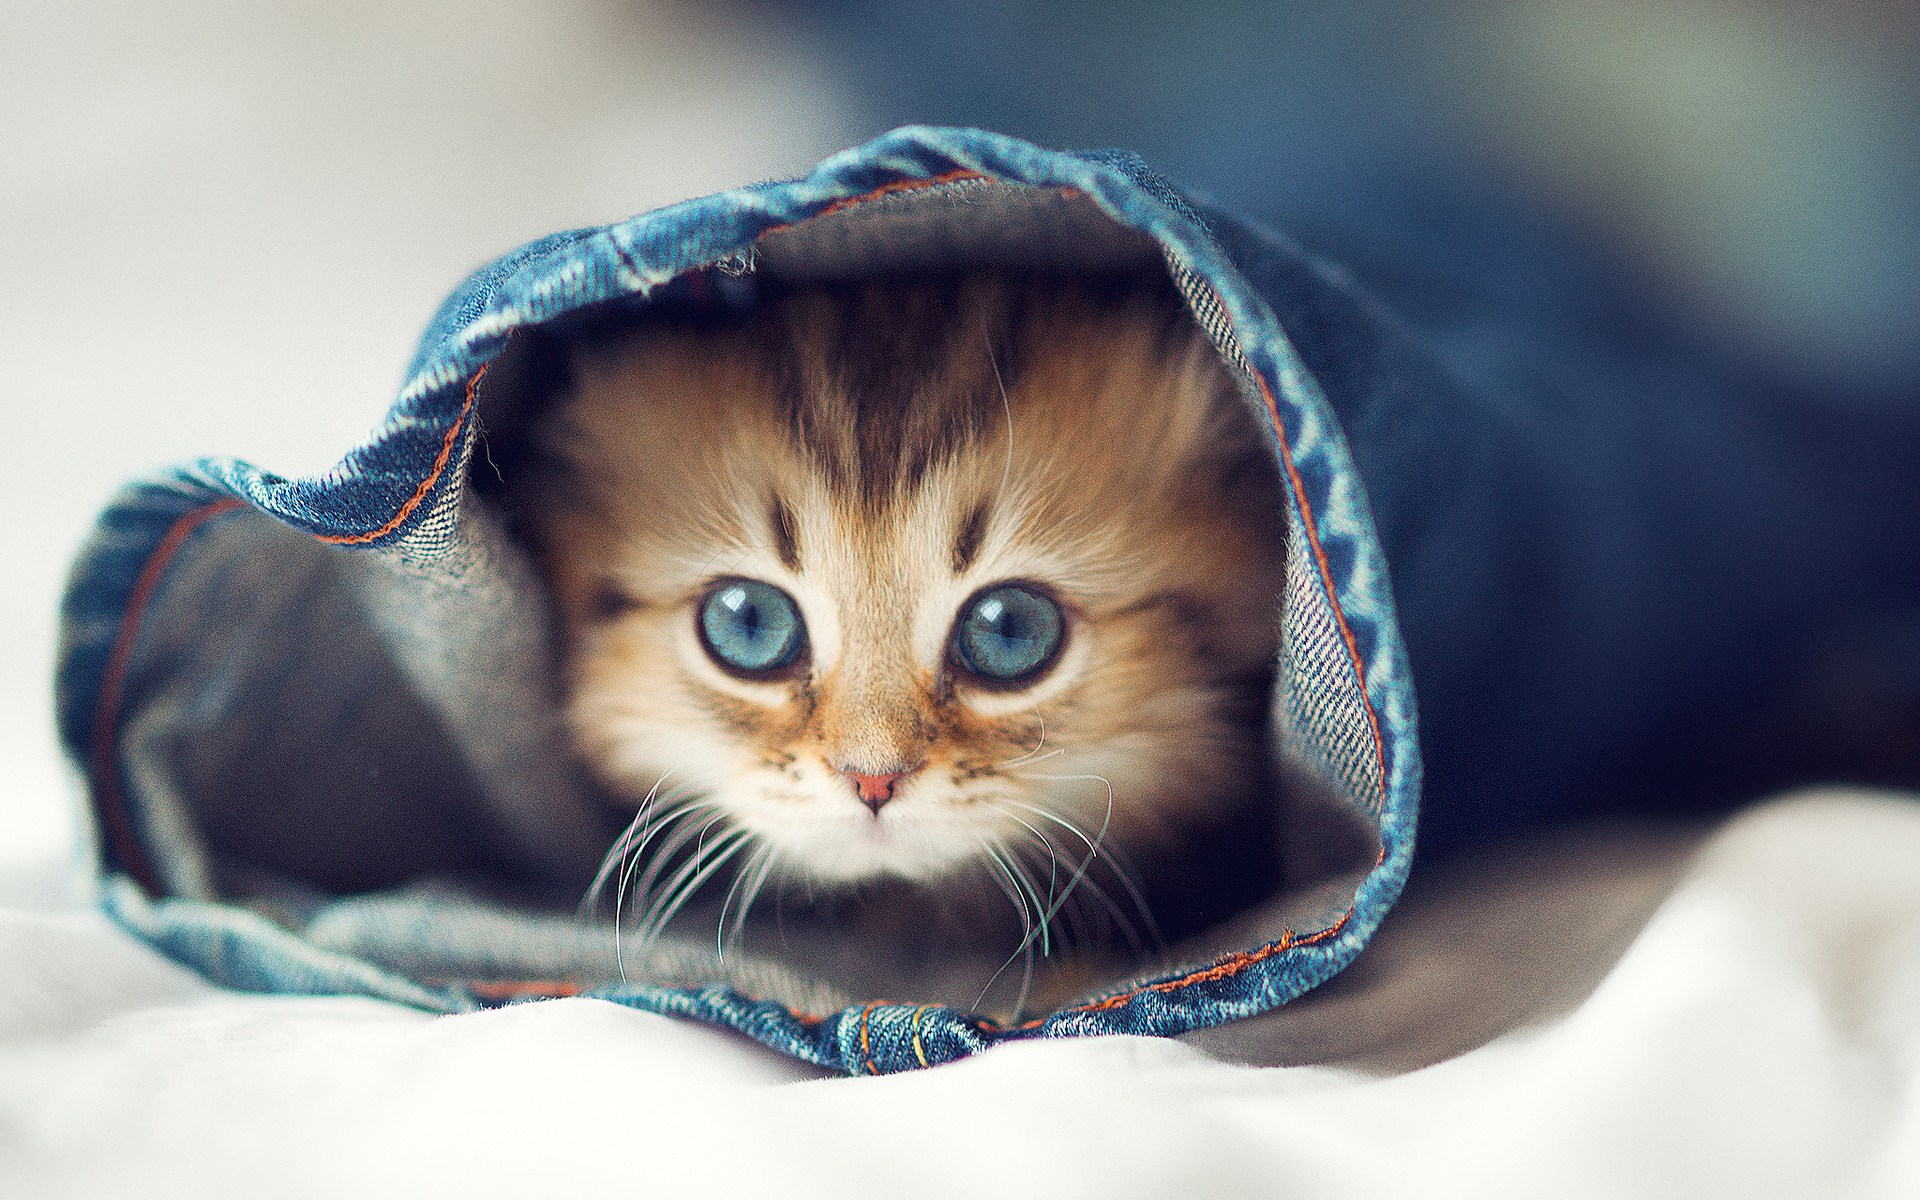 Pune o poza - Pagina 2 Cute-cat-kitten-jeans-the-bed-wallpaper-1920x1200